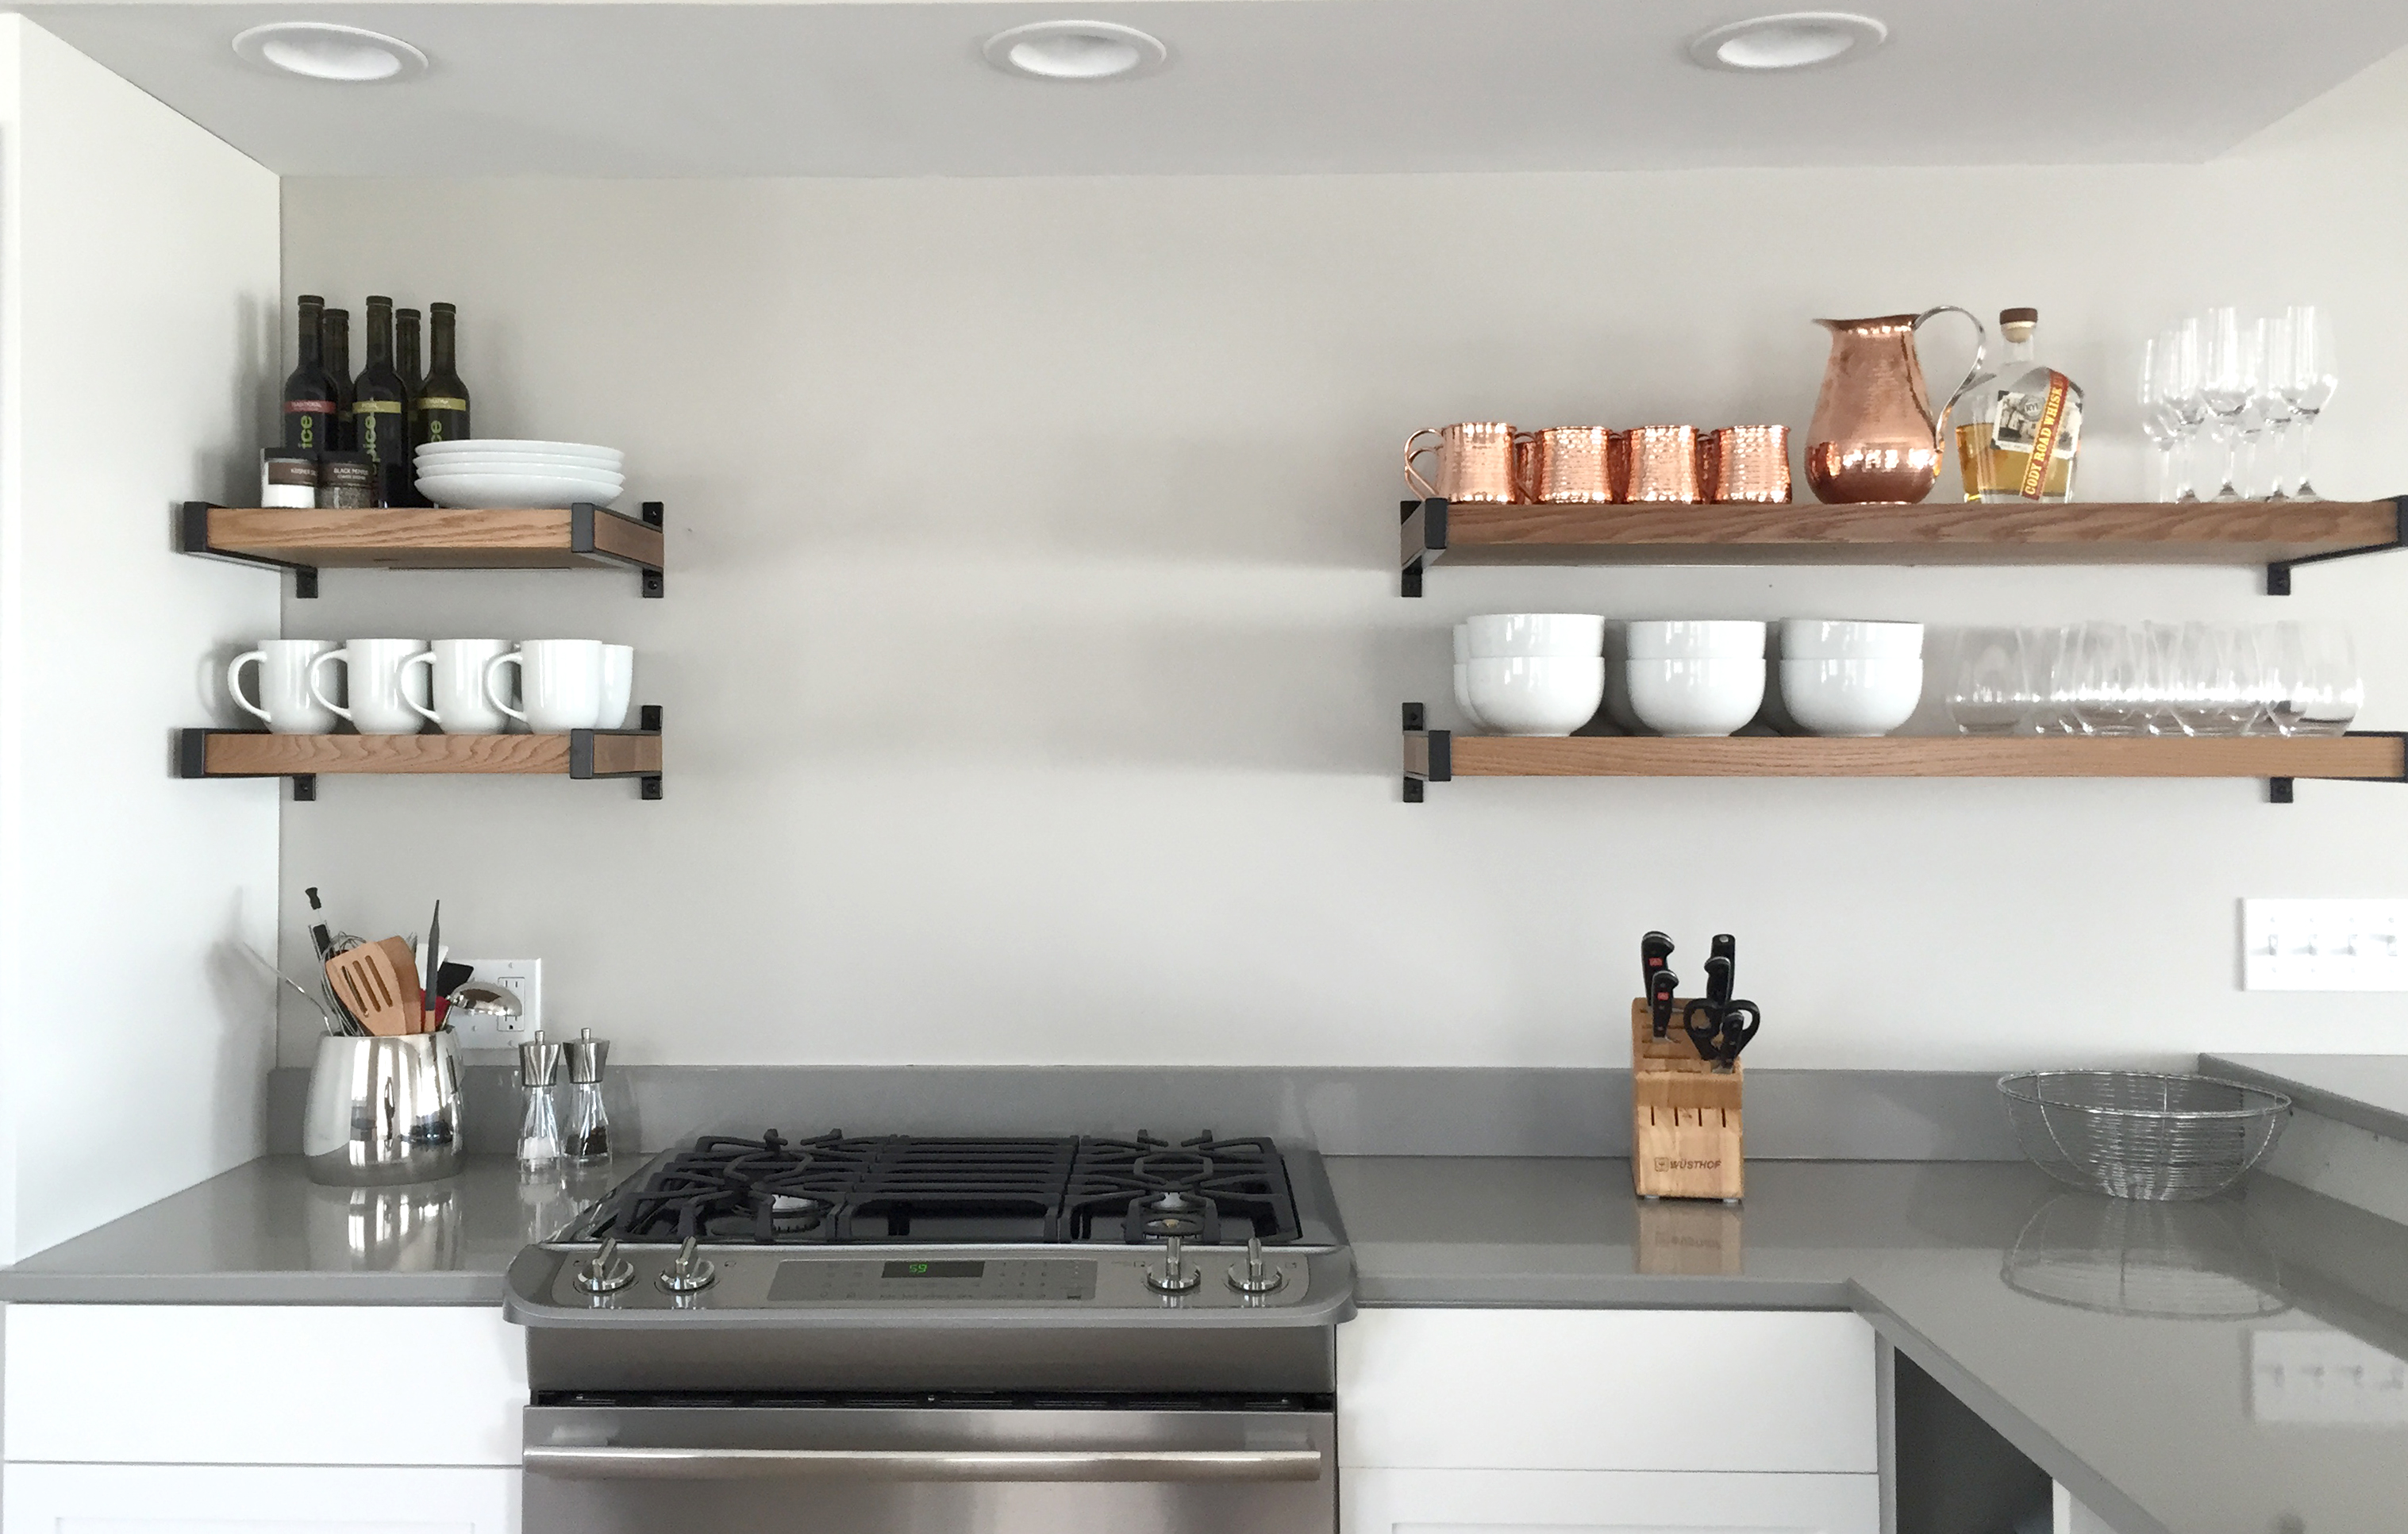 wood-and-steel-open-shelving-modern-kitchen-storage-iowa-2015